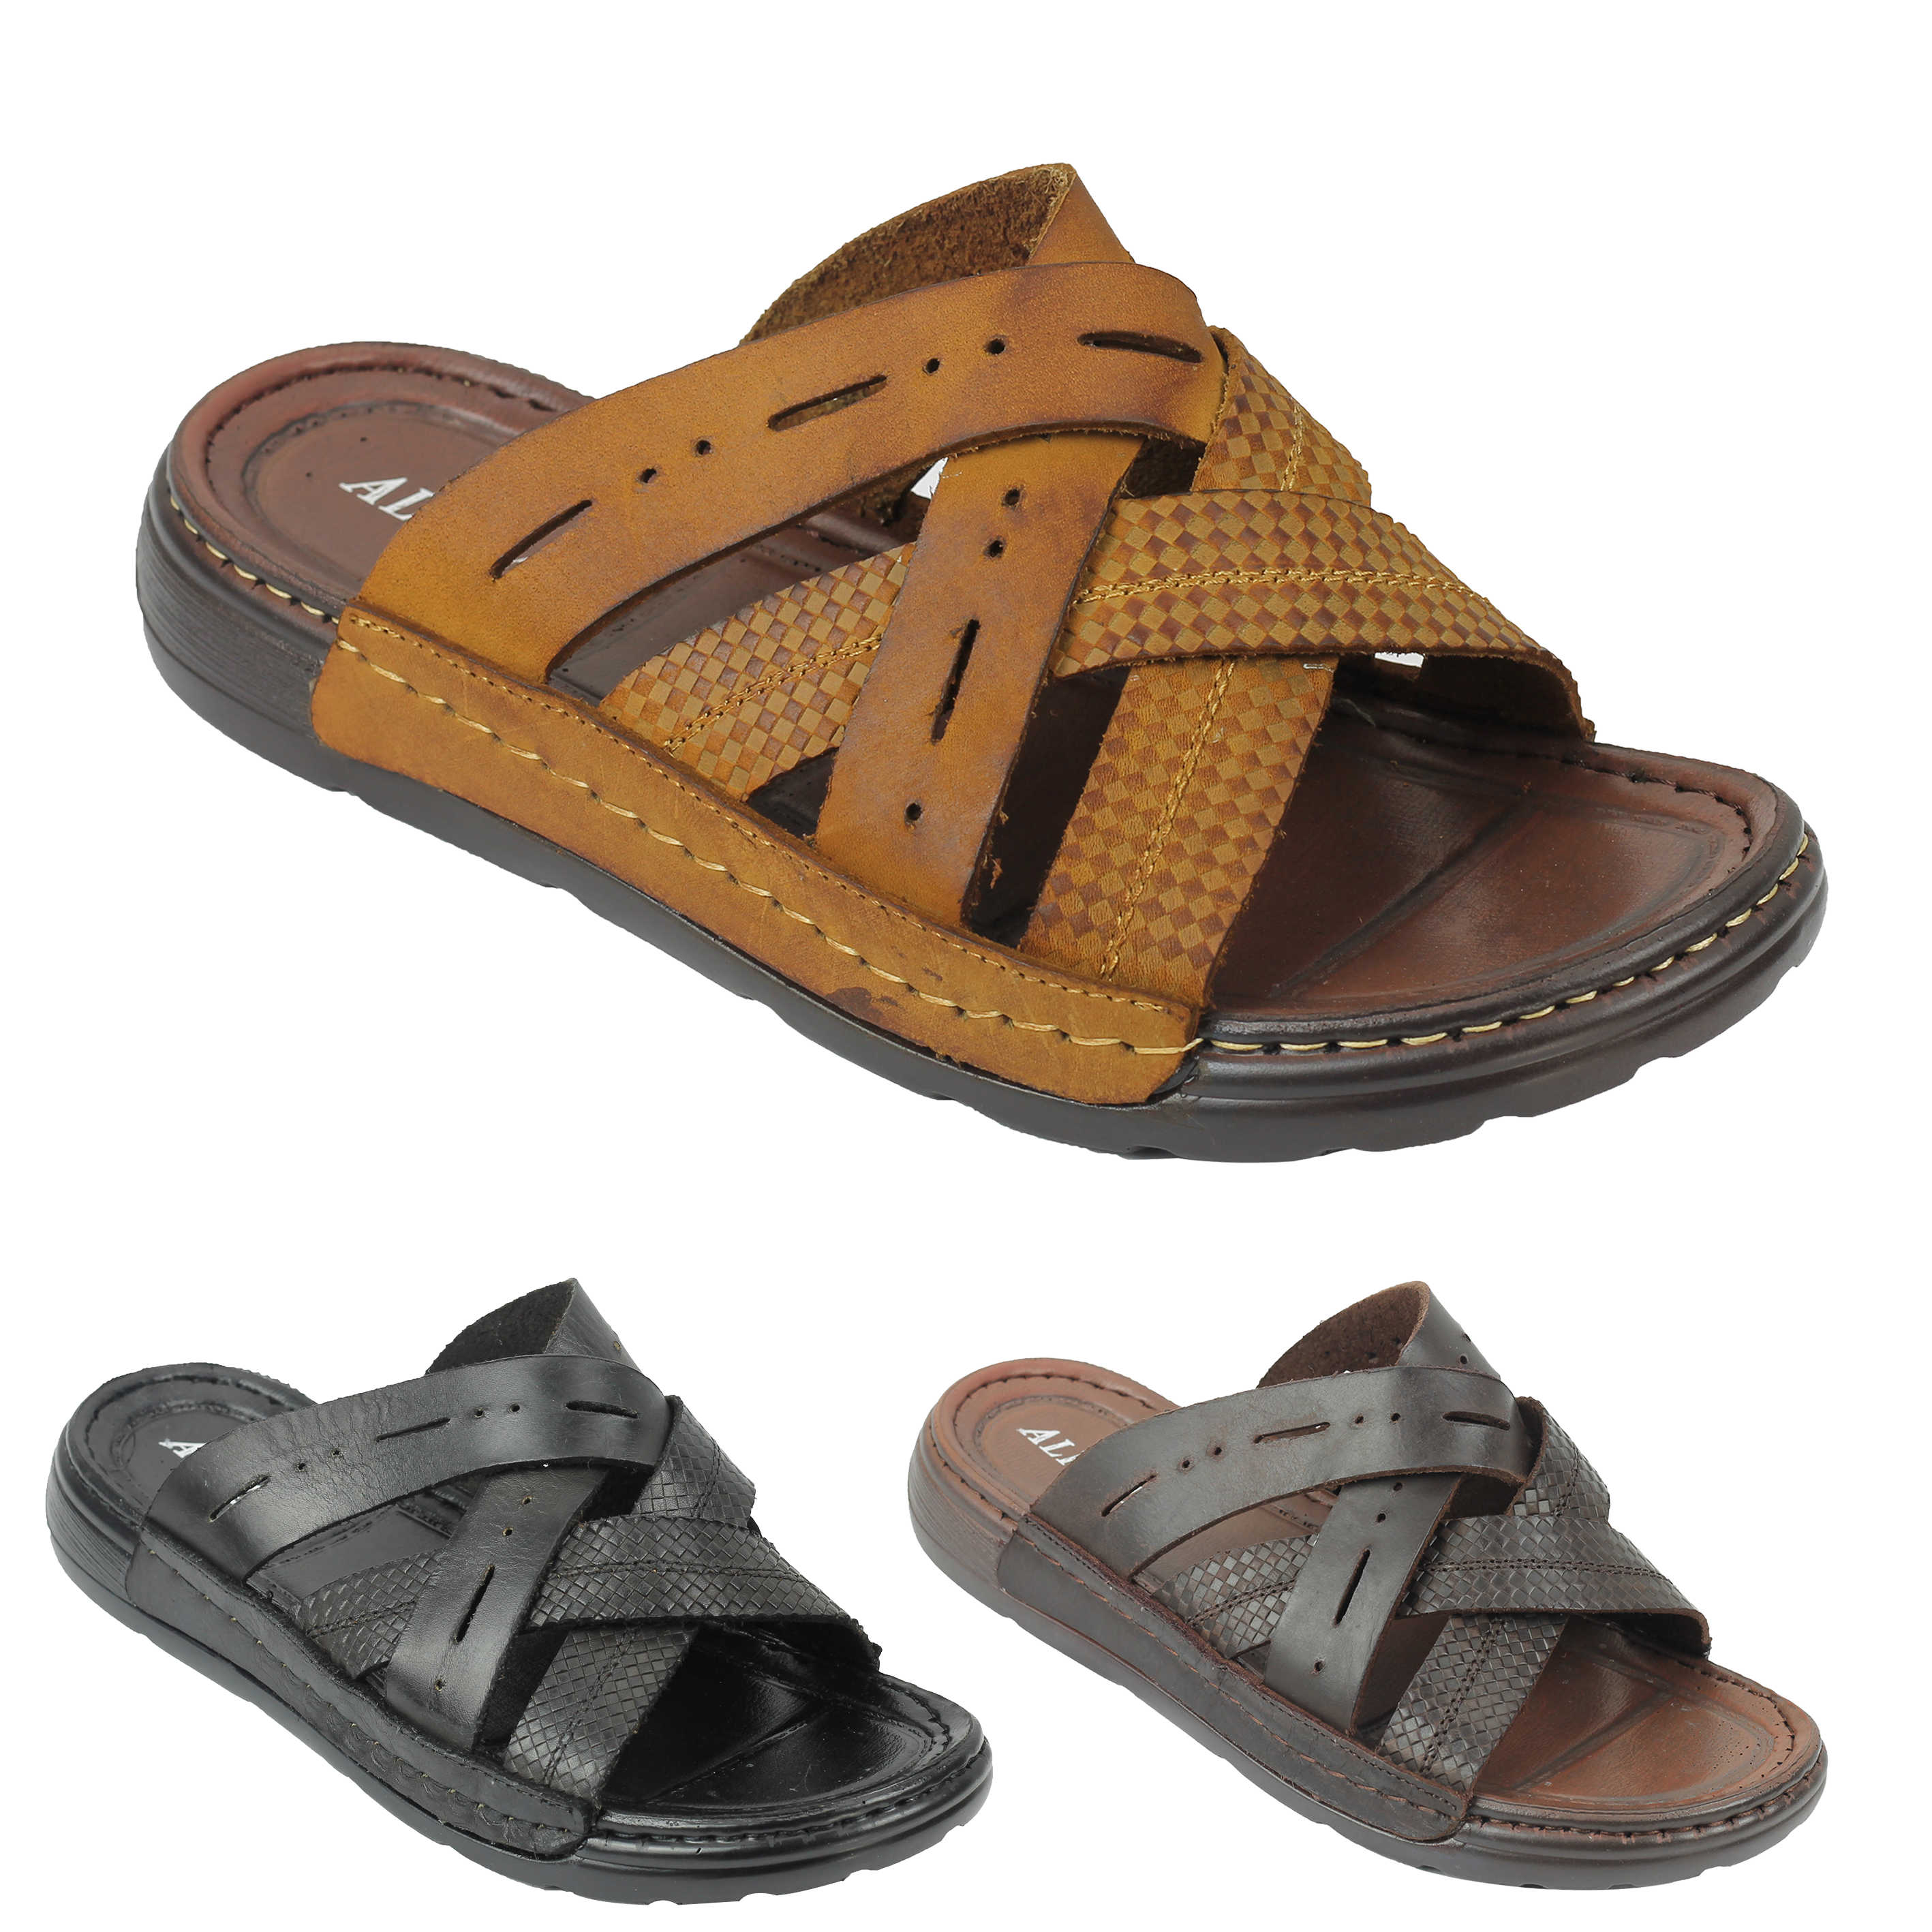 72be3c32c6e21 Mens Soft Real Leather Sandals Cross Straps Open Toe Beach Slippers Black  Brown